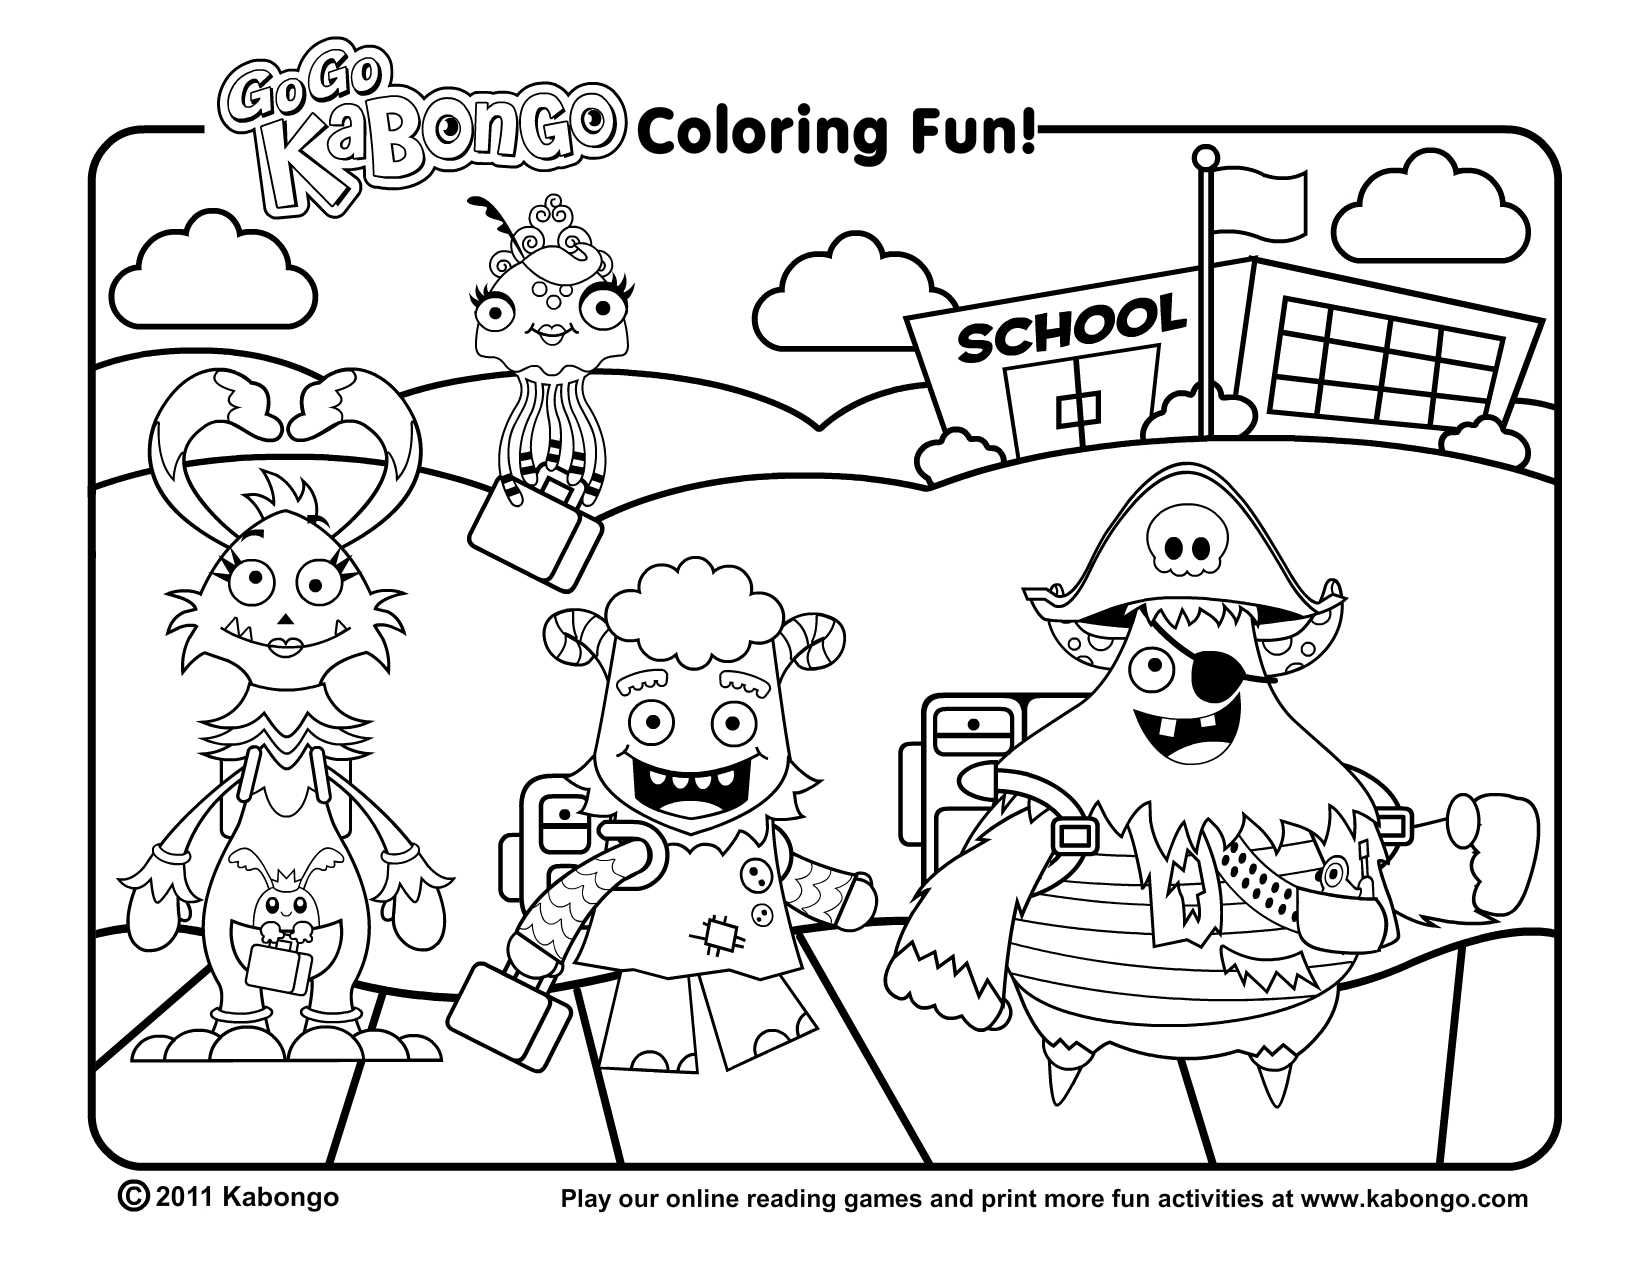 september 16 activities coloring pages - photo#4